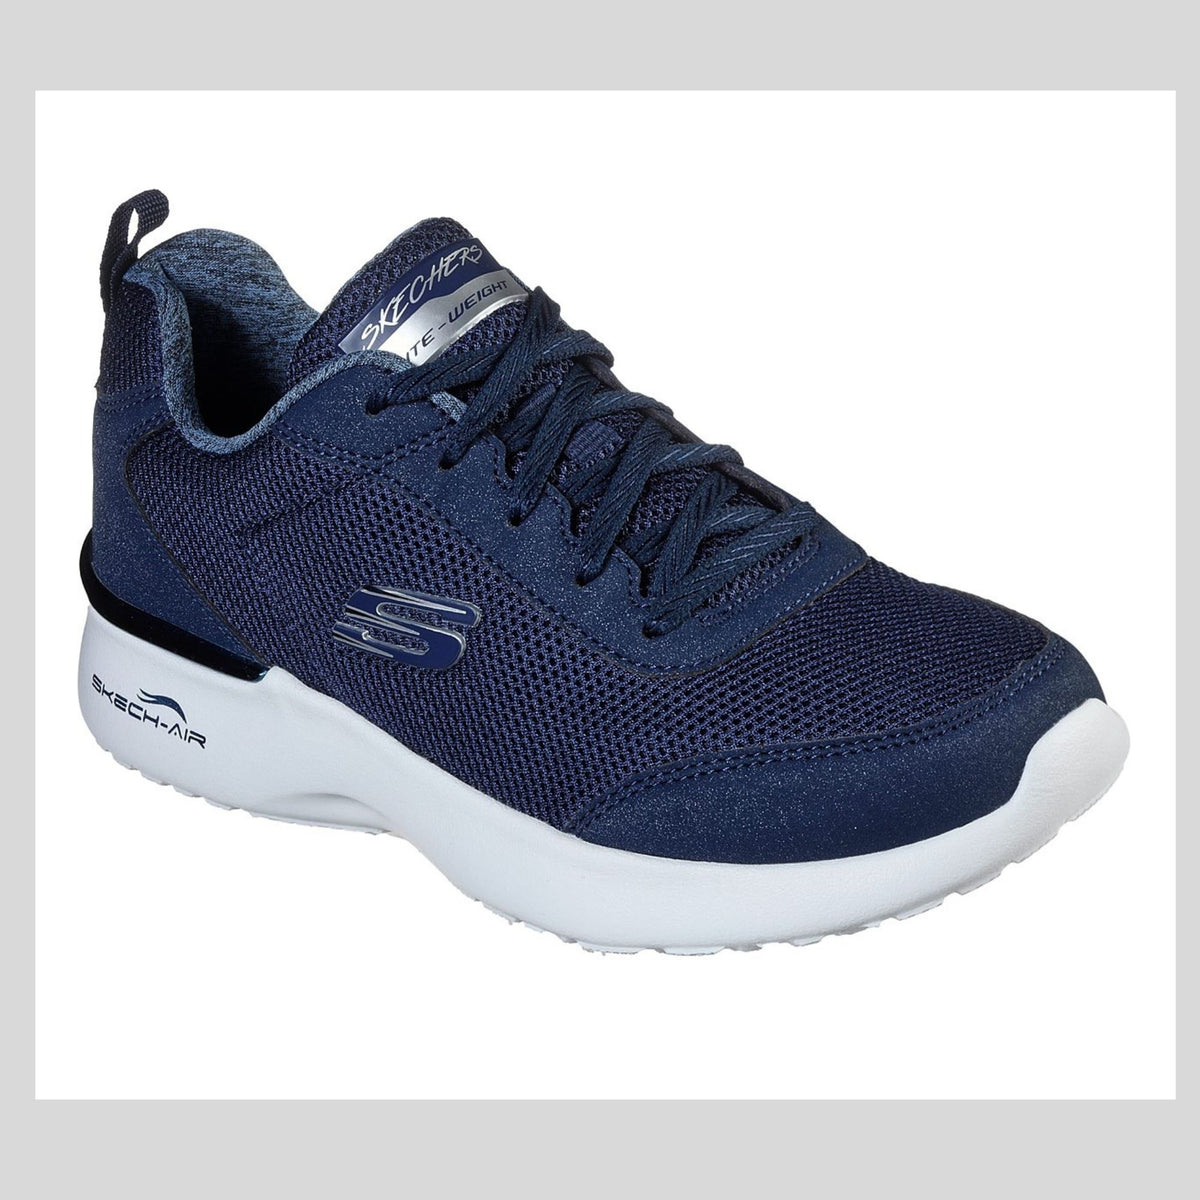 Skechers 12947 NVY - Skech-Air Dynamight-Fast Brak